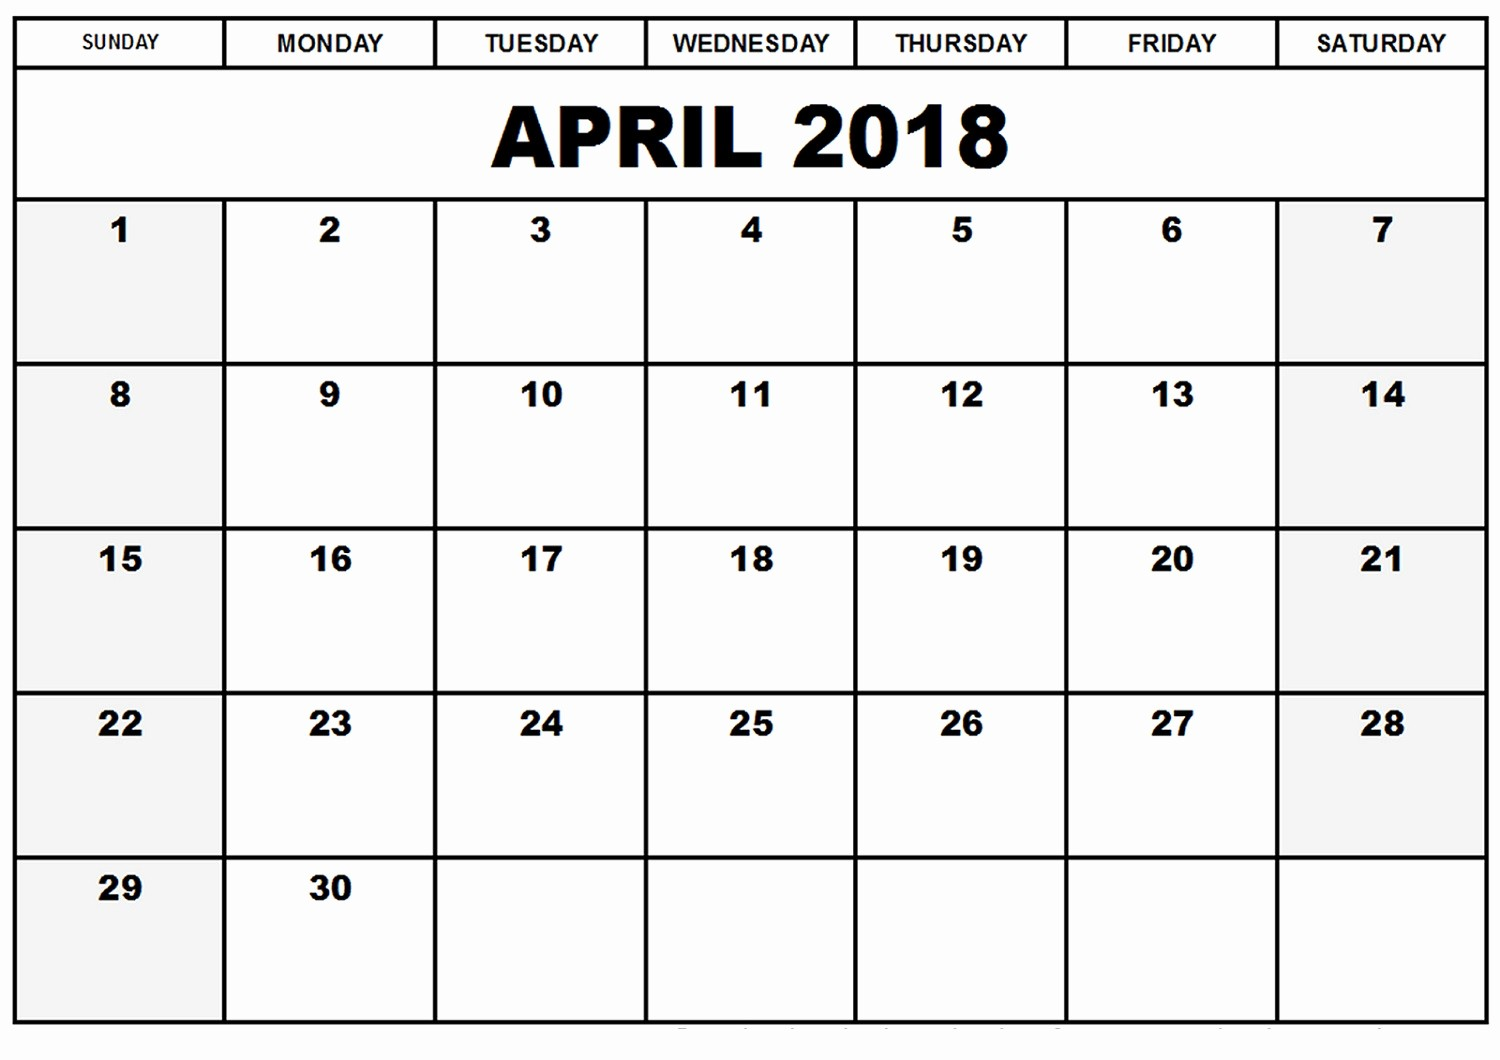 Blank April 2018 Calendar Template Elegant Printable Blank 2018 Monthly Calendar April – Printable